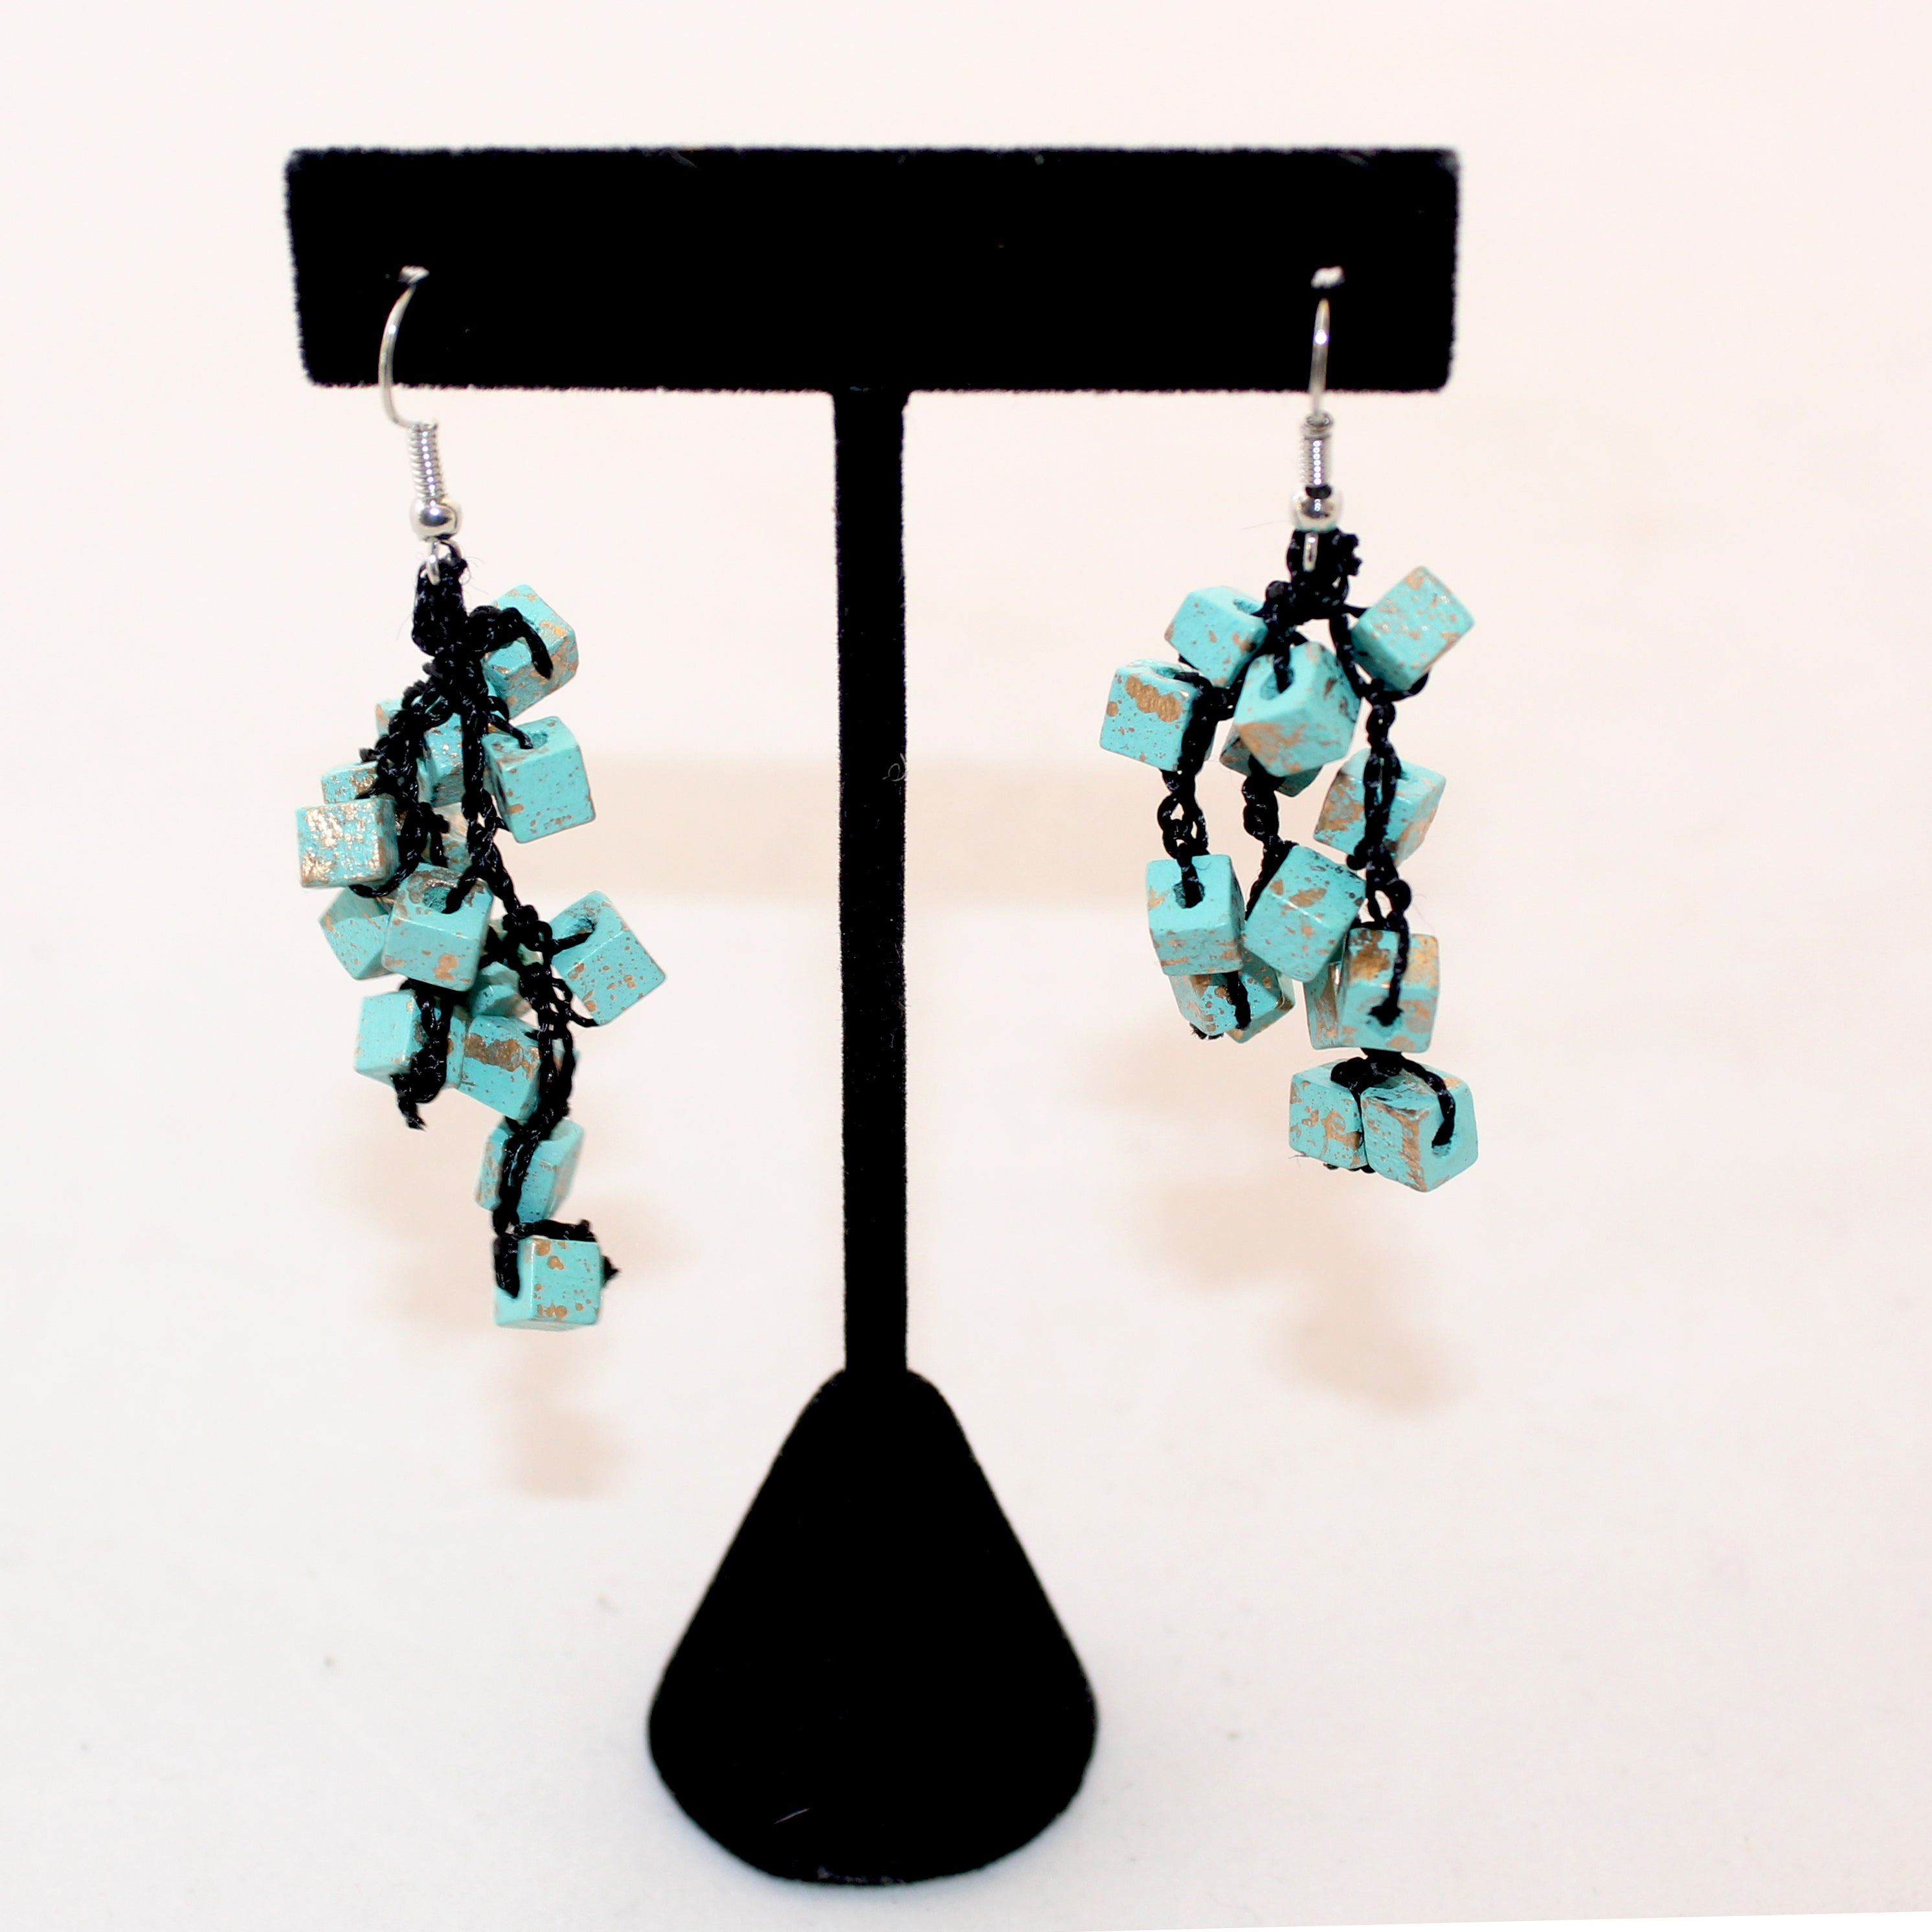 Jianhui Earrings, Cubes, Short, Turquoise With Gold Flecks